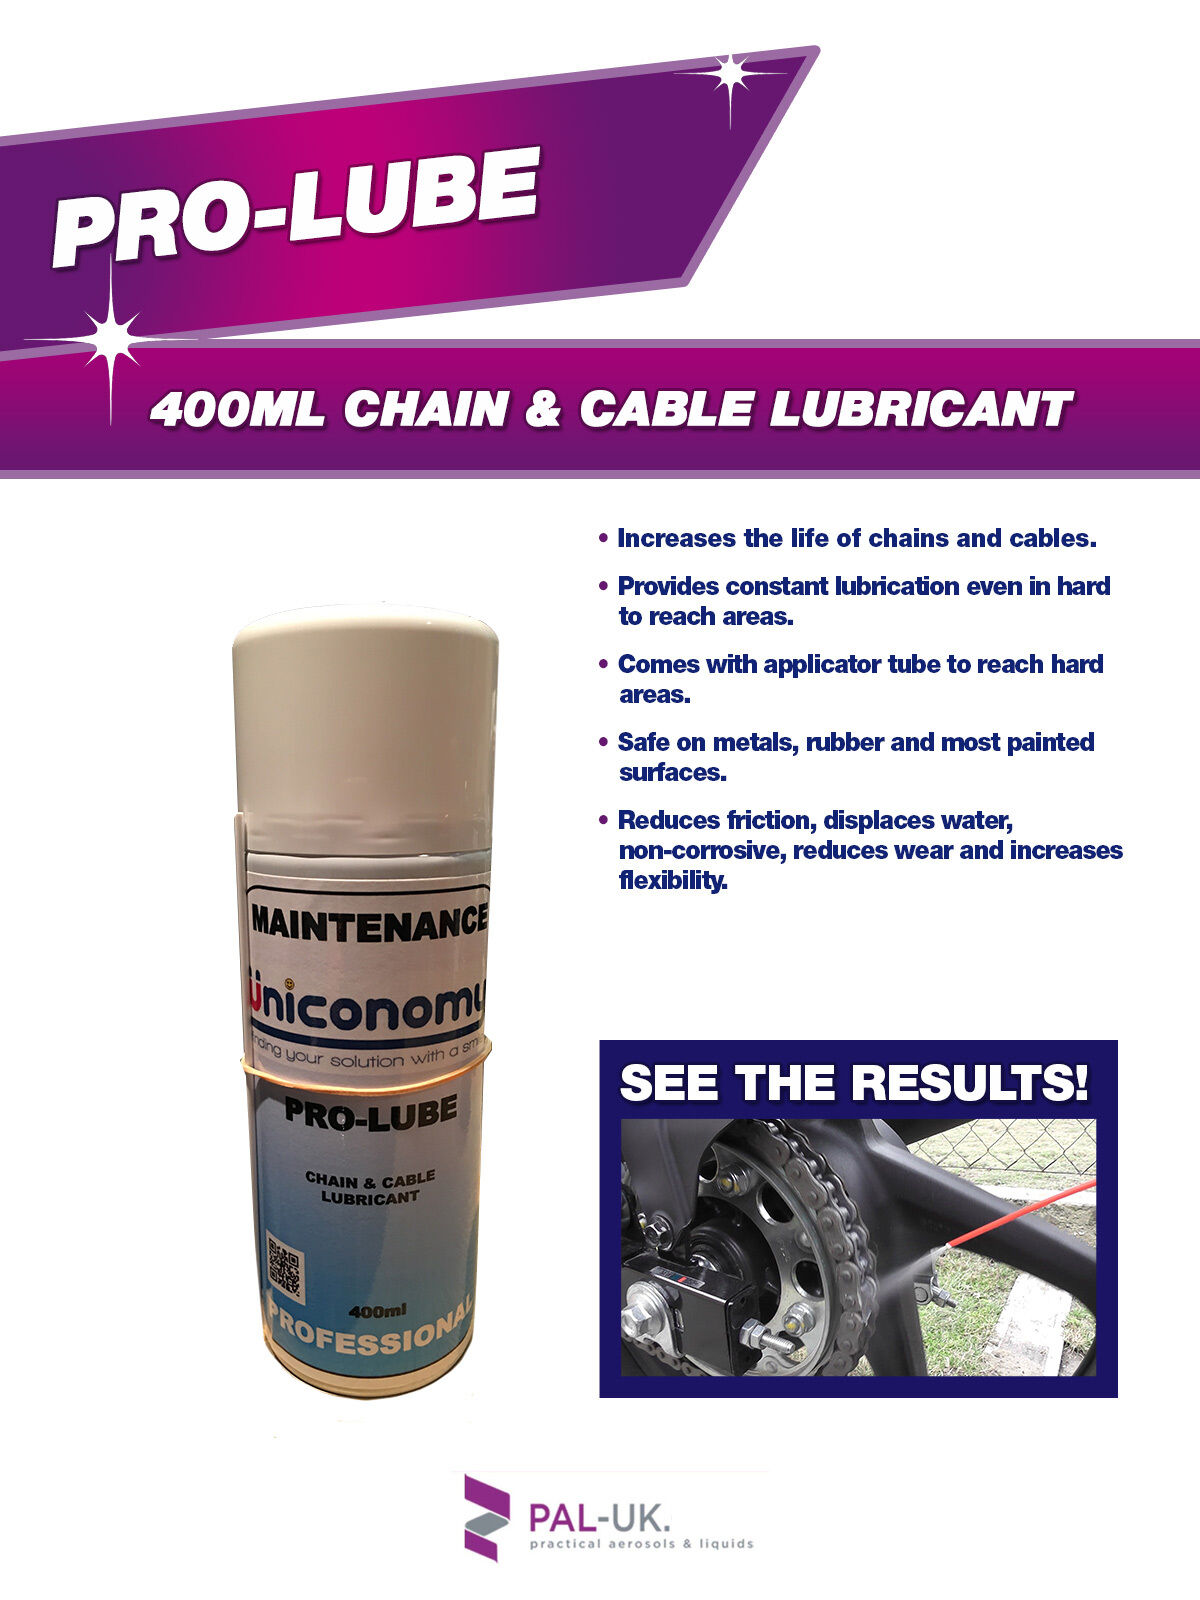 Chain Cable Lubricant - Comes with applicator tube to reach awkward areas